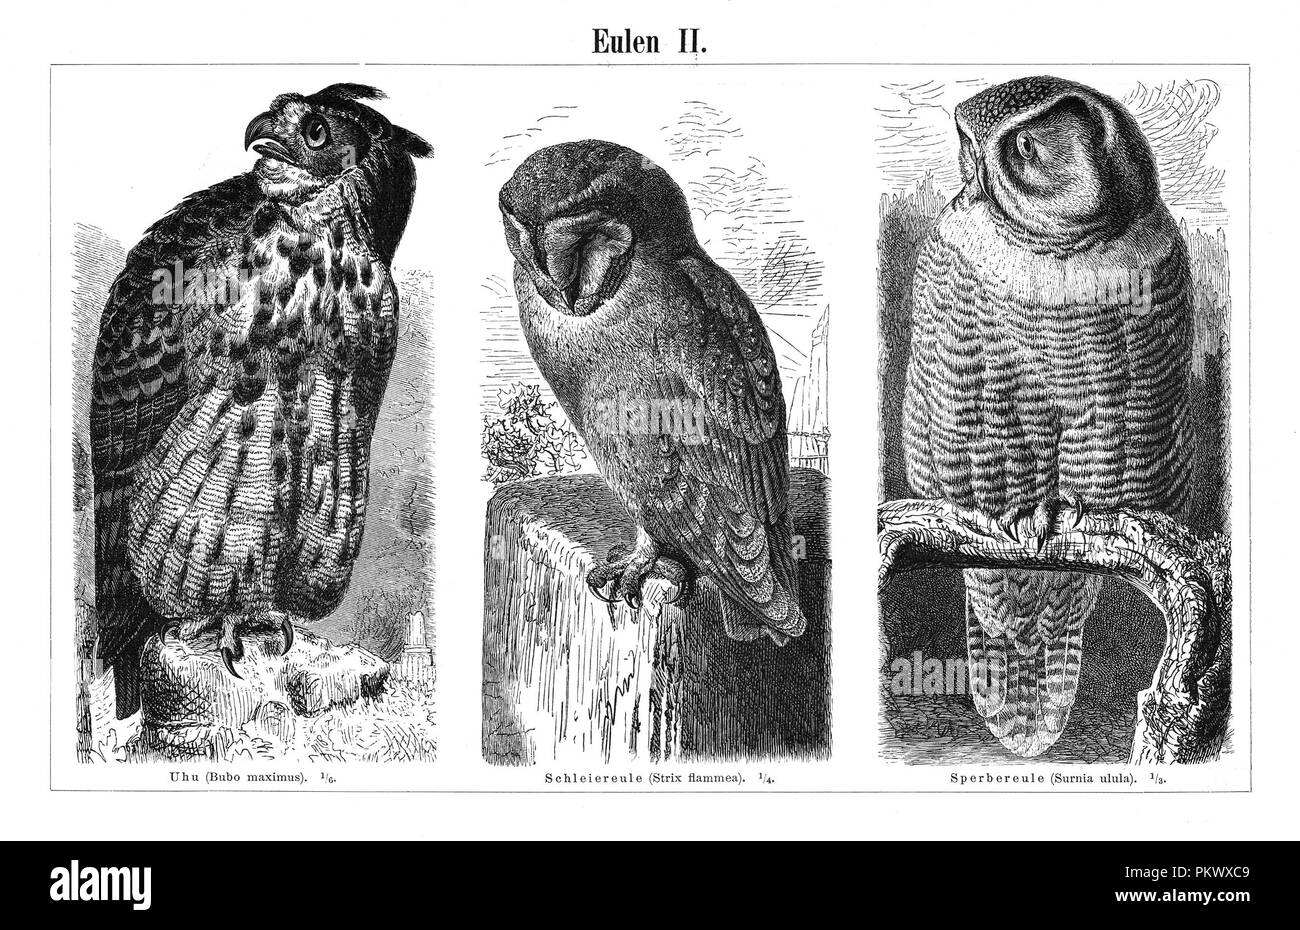 Owls, Antique book illustrations, scanned. Fauna. Meyers Konversations-Lexikon, anno 1897, by Bibliographisches Institut. Images contain a set of birds, originally illustrated for encyclopedias of the late 1800s. - Stock Image